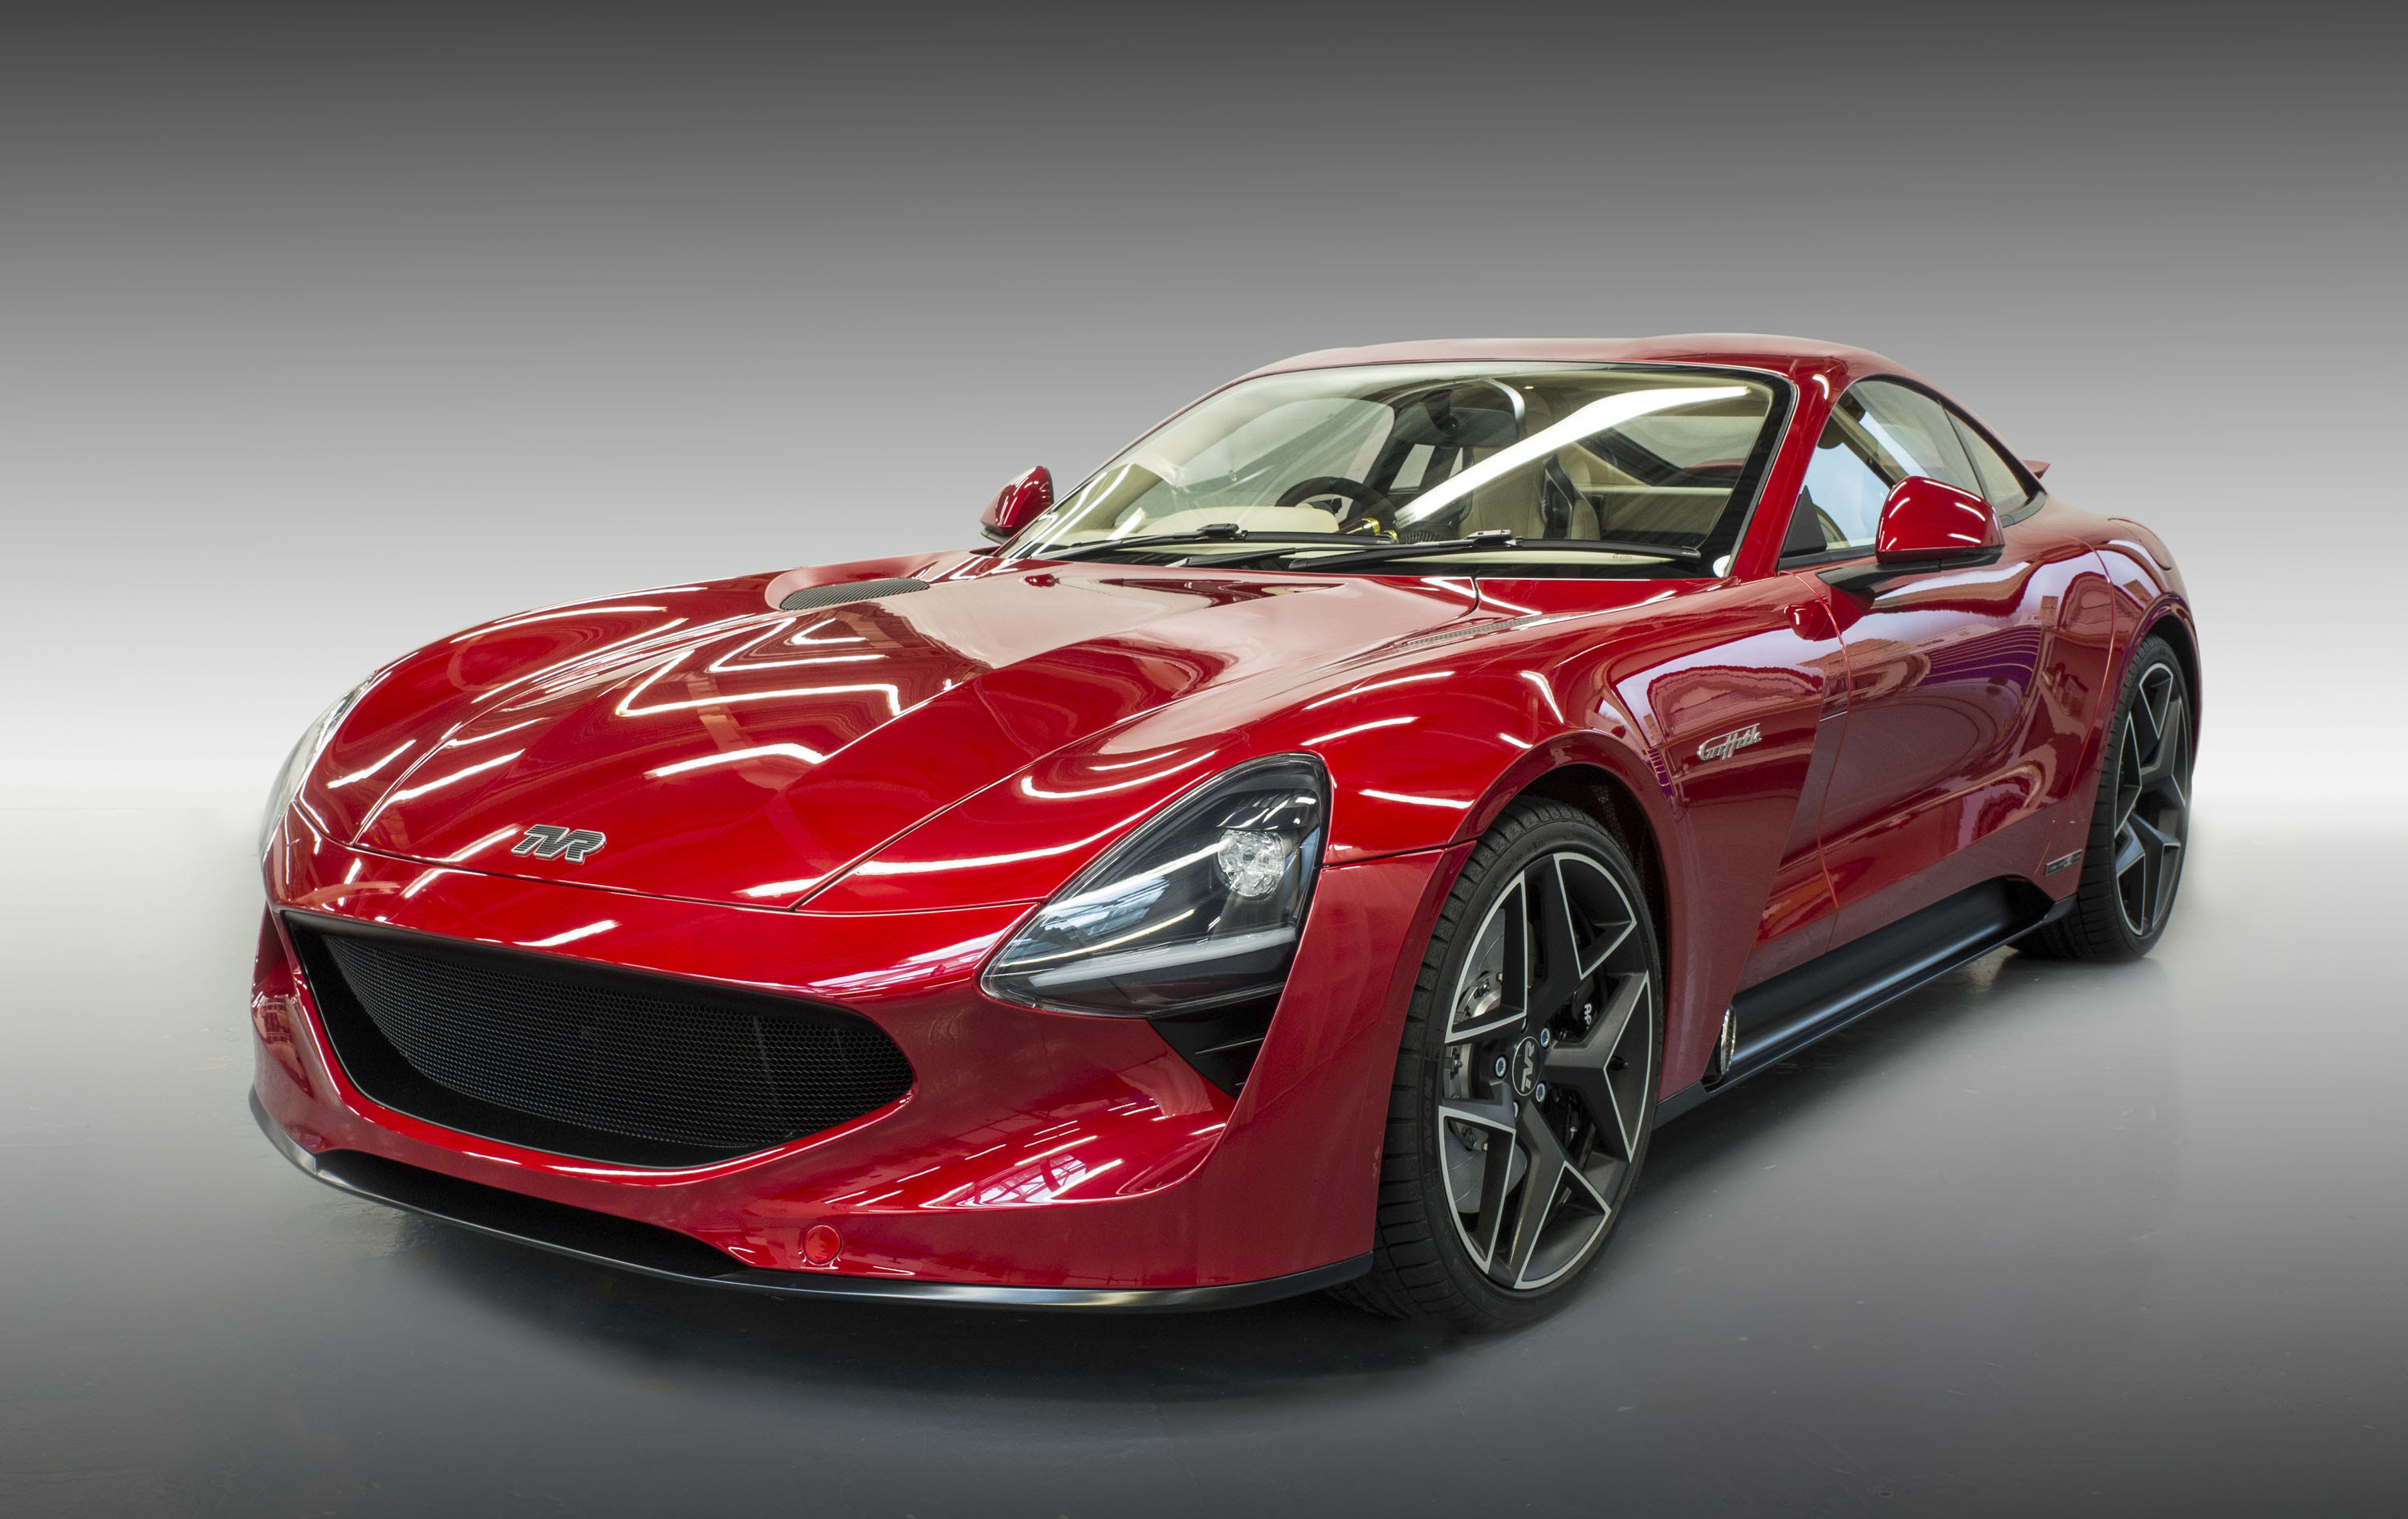 Image result for tvr griffith 2018